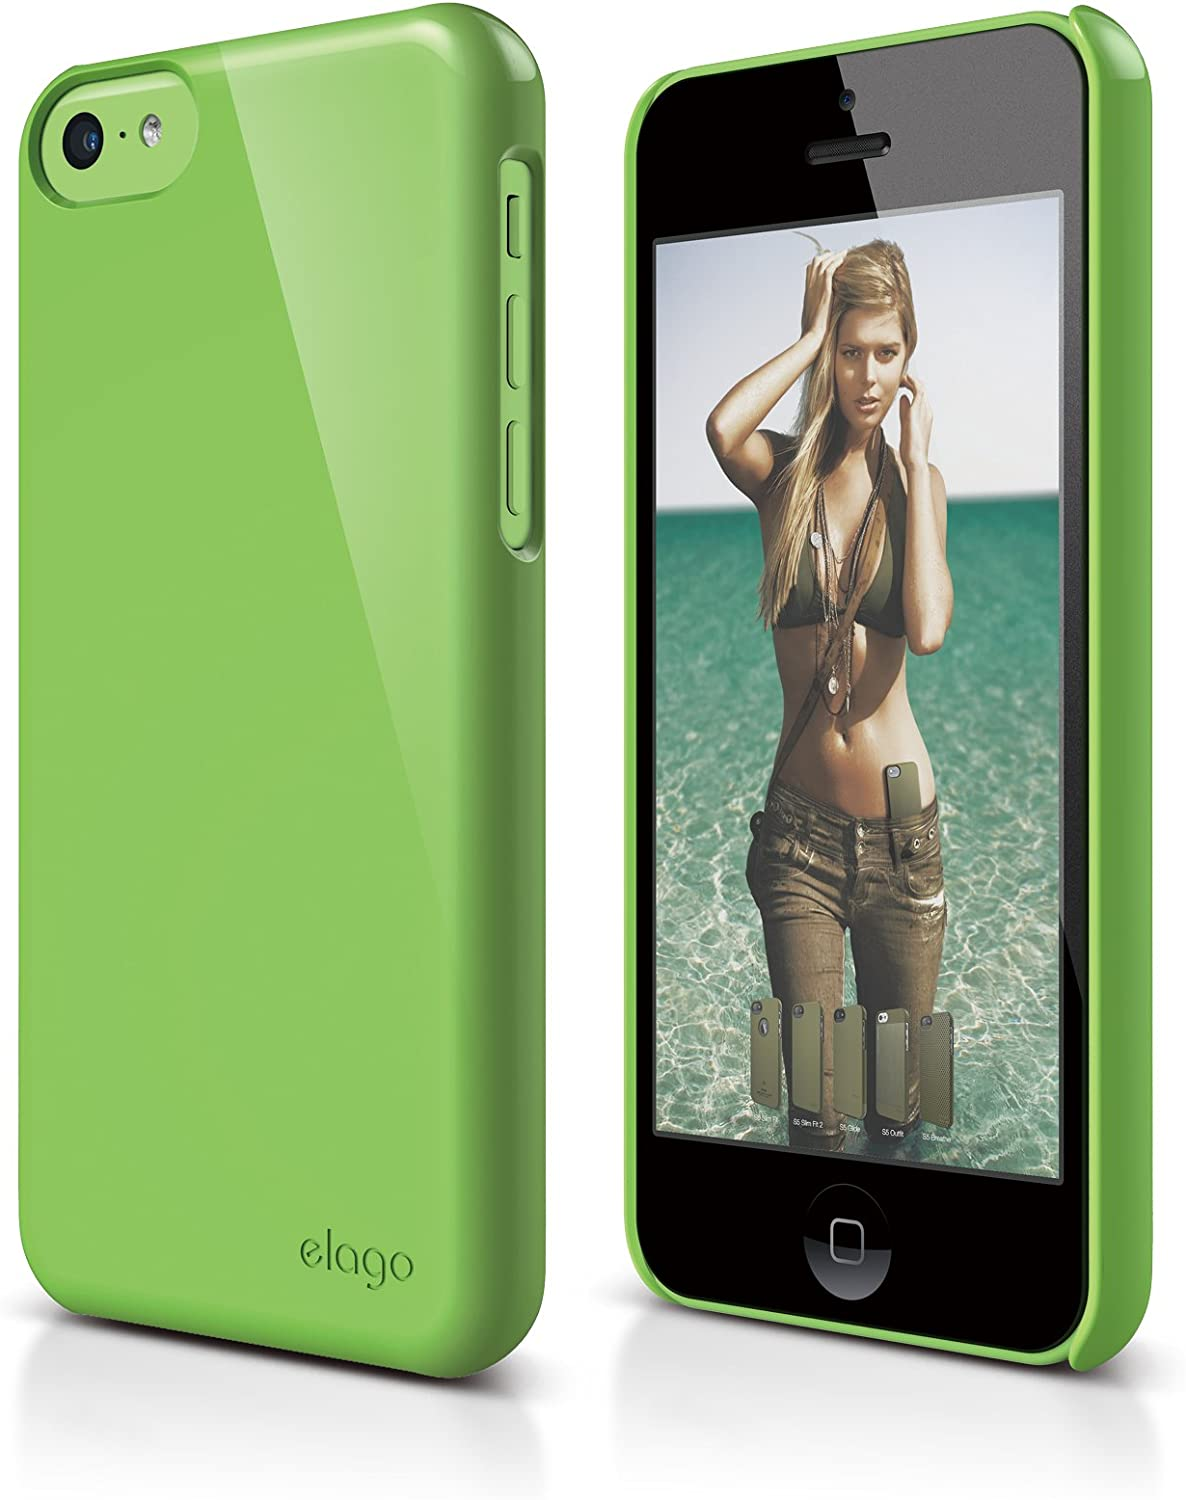 elago S5C Slim Fit 2 Case for iPhone 5C - eco Friendly Retail Packaging (Green)